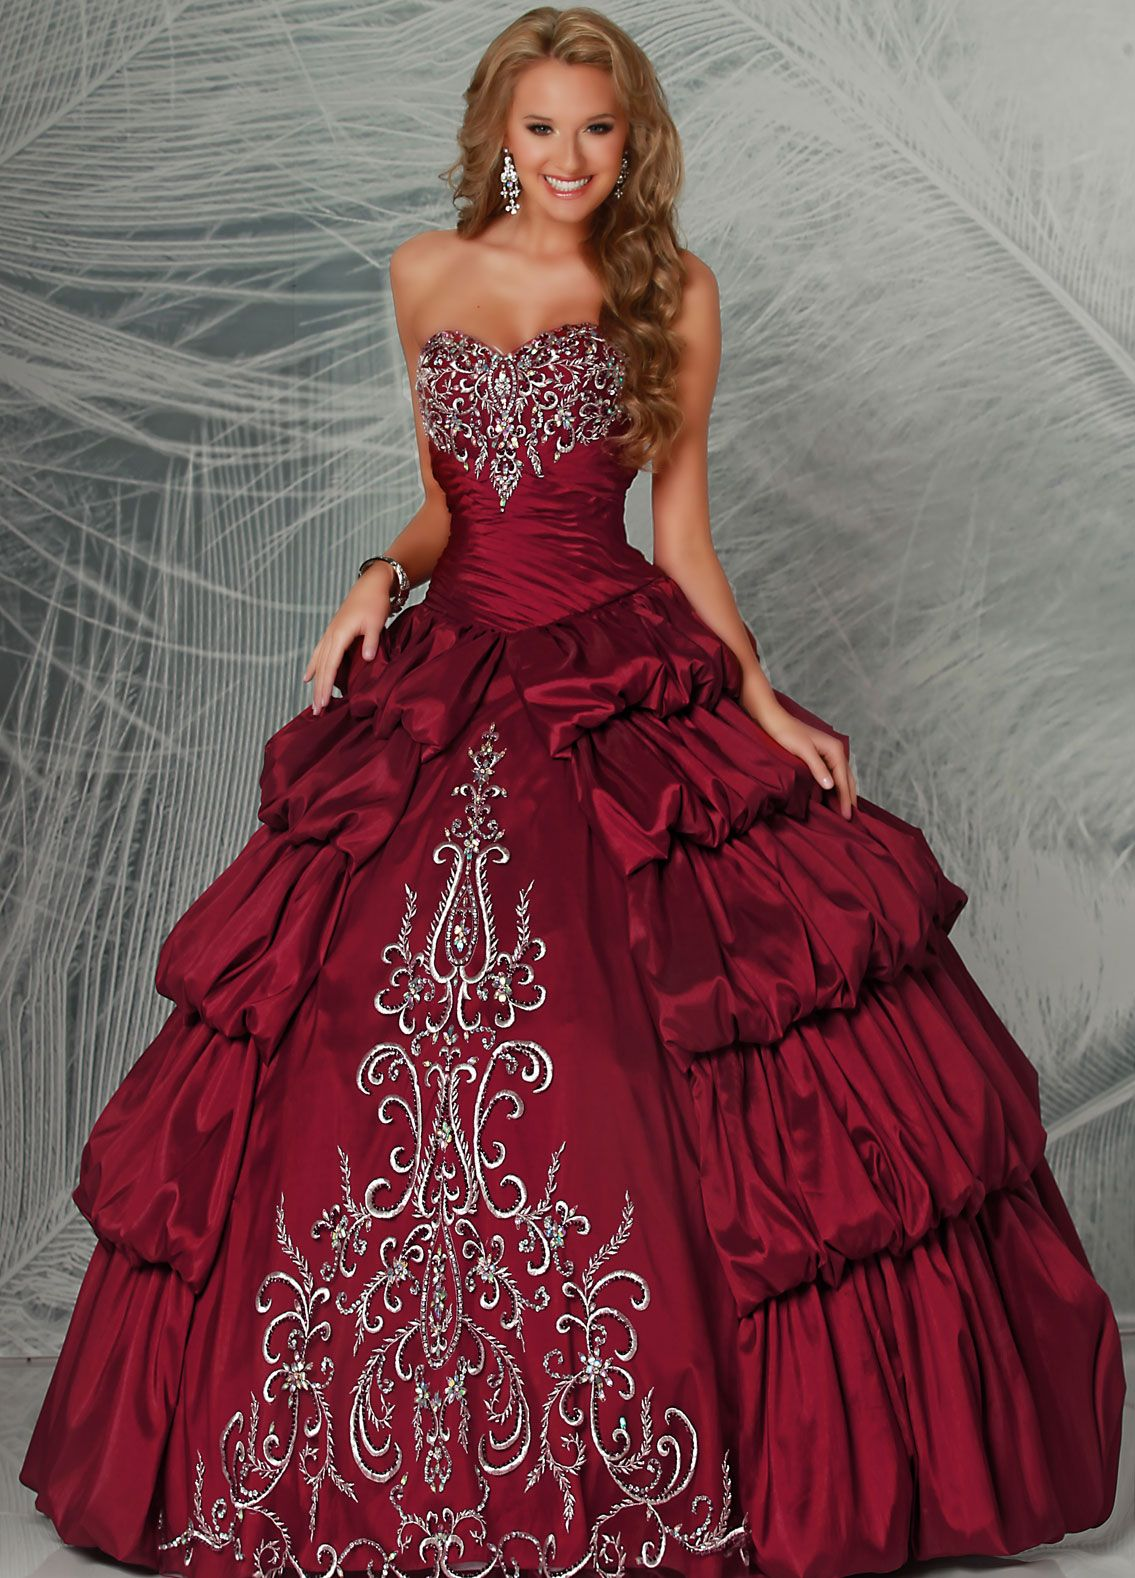 Pin by star moreno on quinceneria pinterest gowns prom and ball